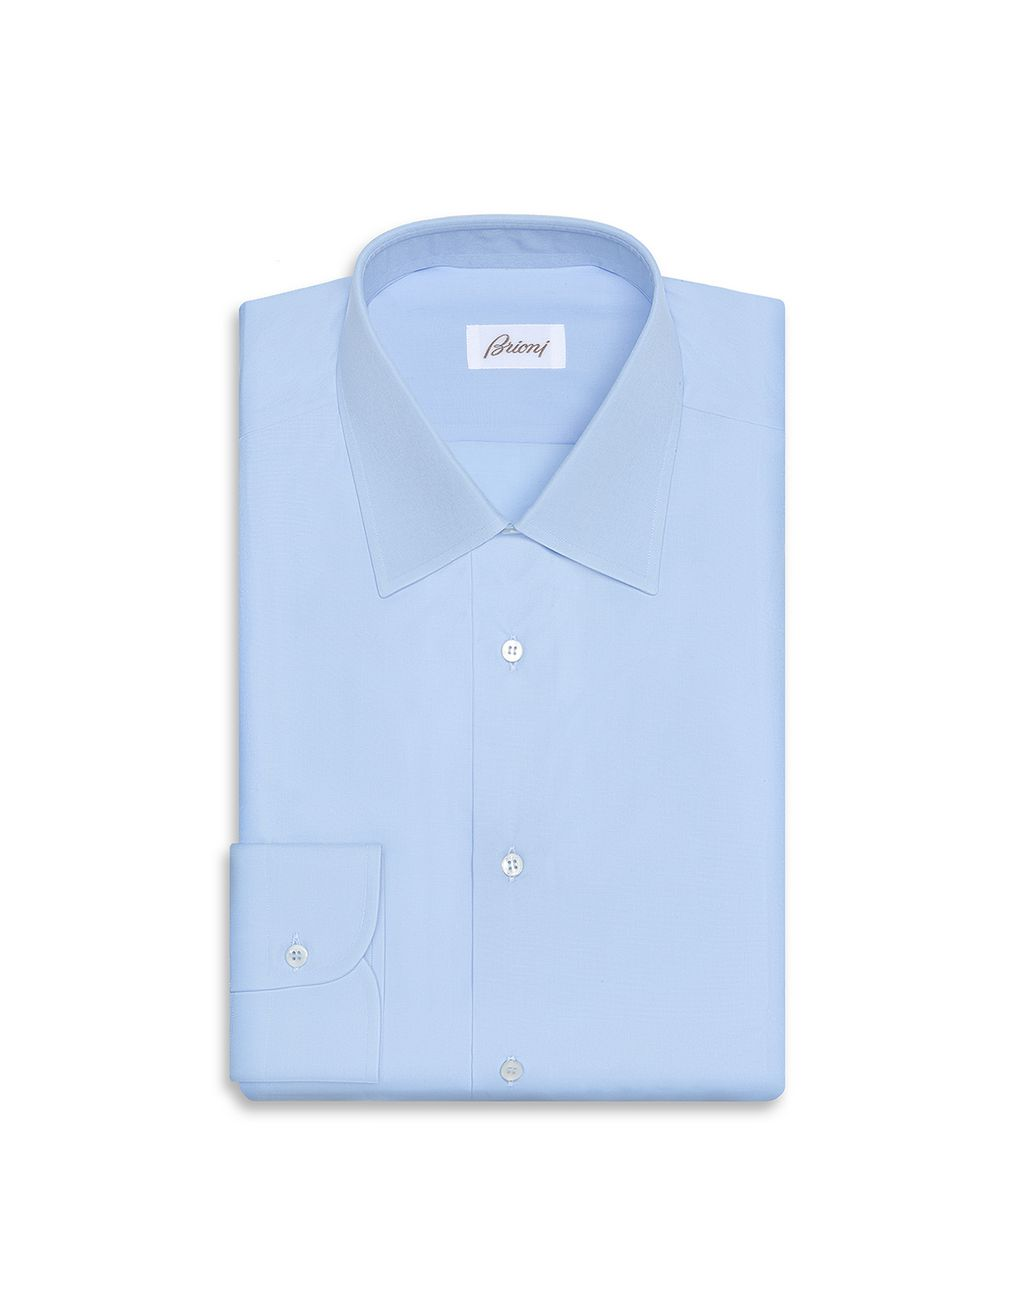 BRIONI 'Essential' Light Blue Formal Shirt Formal shirt [*** pickupInStoreShippingNotGuaranteed_info ***] f